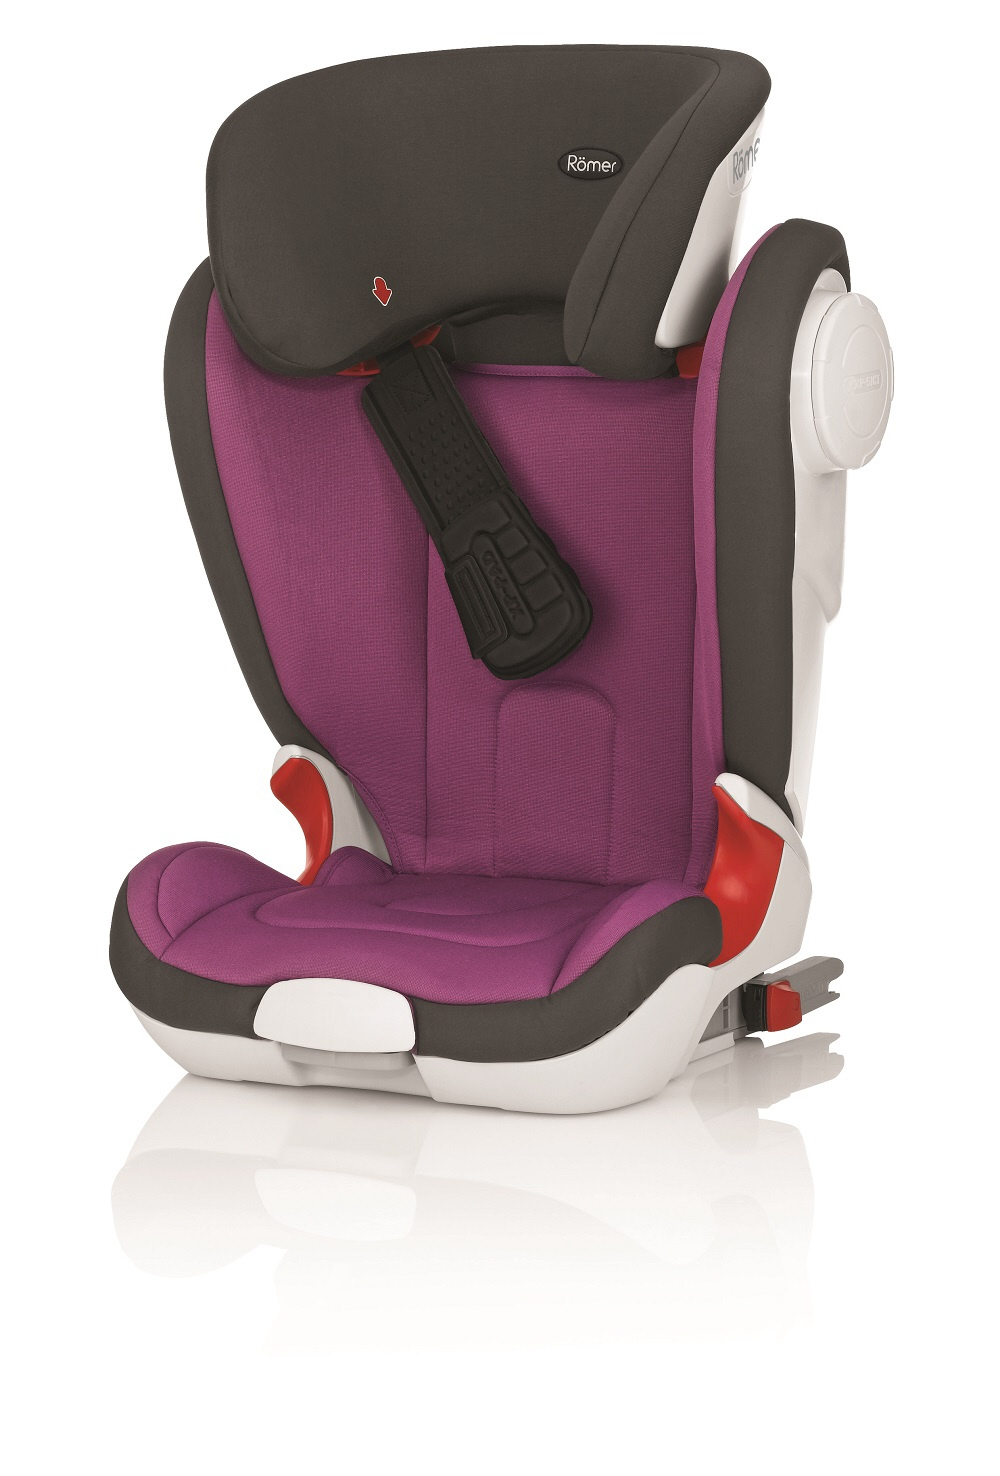 britax r mer child car seat kidfix xp sict 2015 cool berry buy at kidsroom car seats. Black Bedroom Furniture Sets. Home Design Ideas